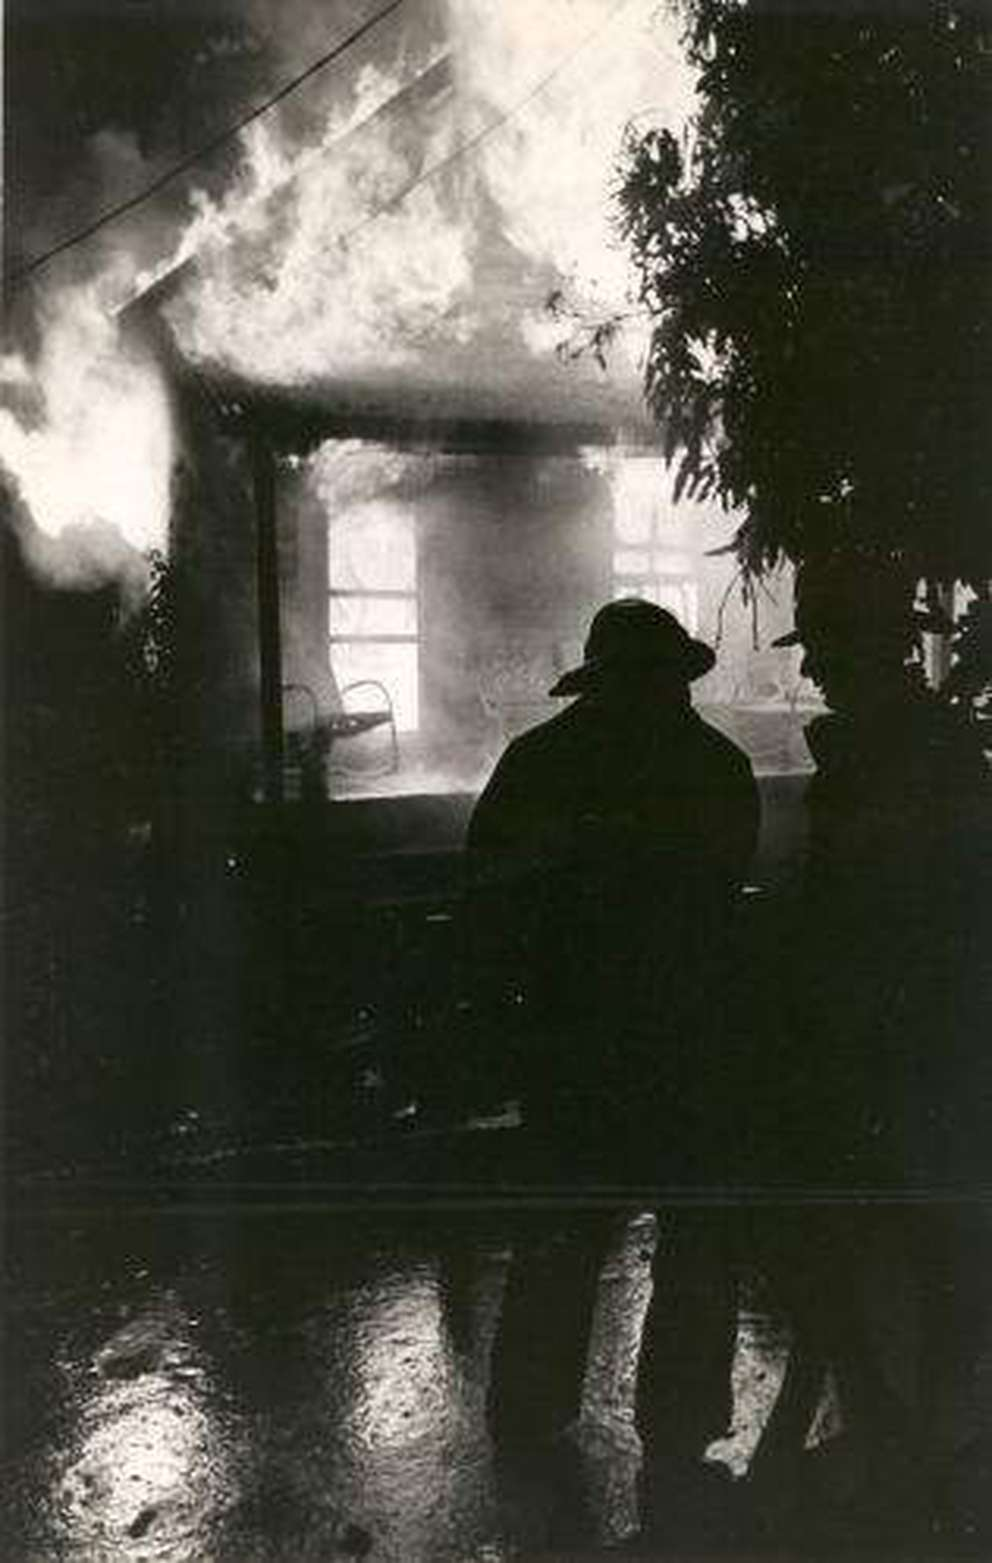 A home burns in June 1967 during rioting along Central Avenue that followed the fatal shooting of a black youth by a white Tampa police officer. (Times 1967)